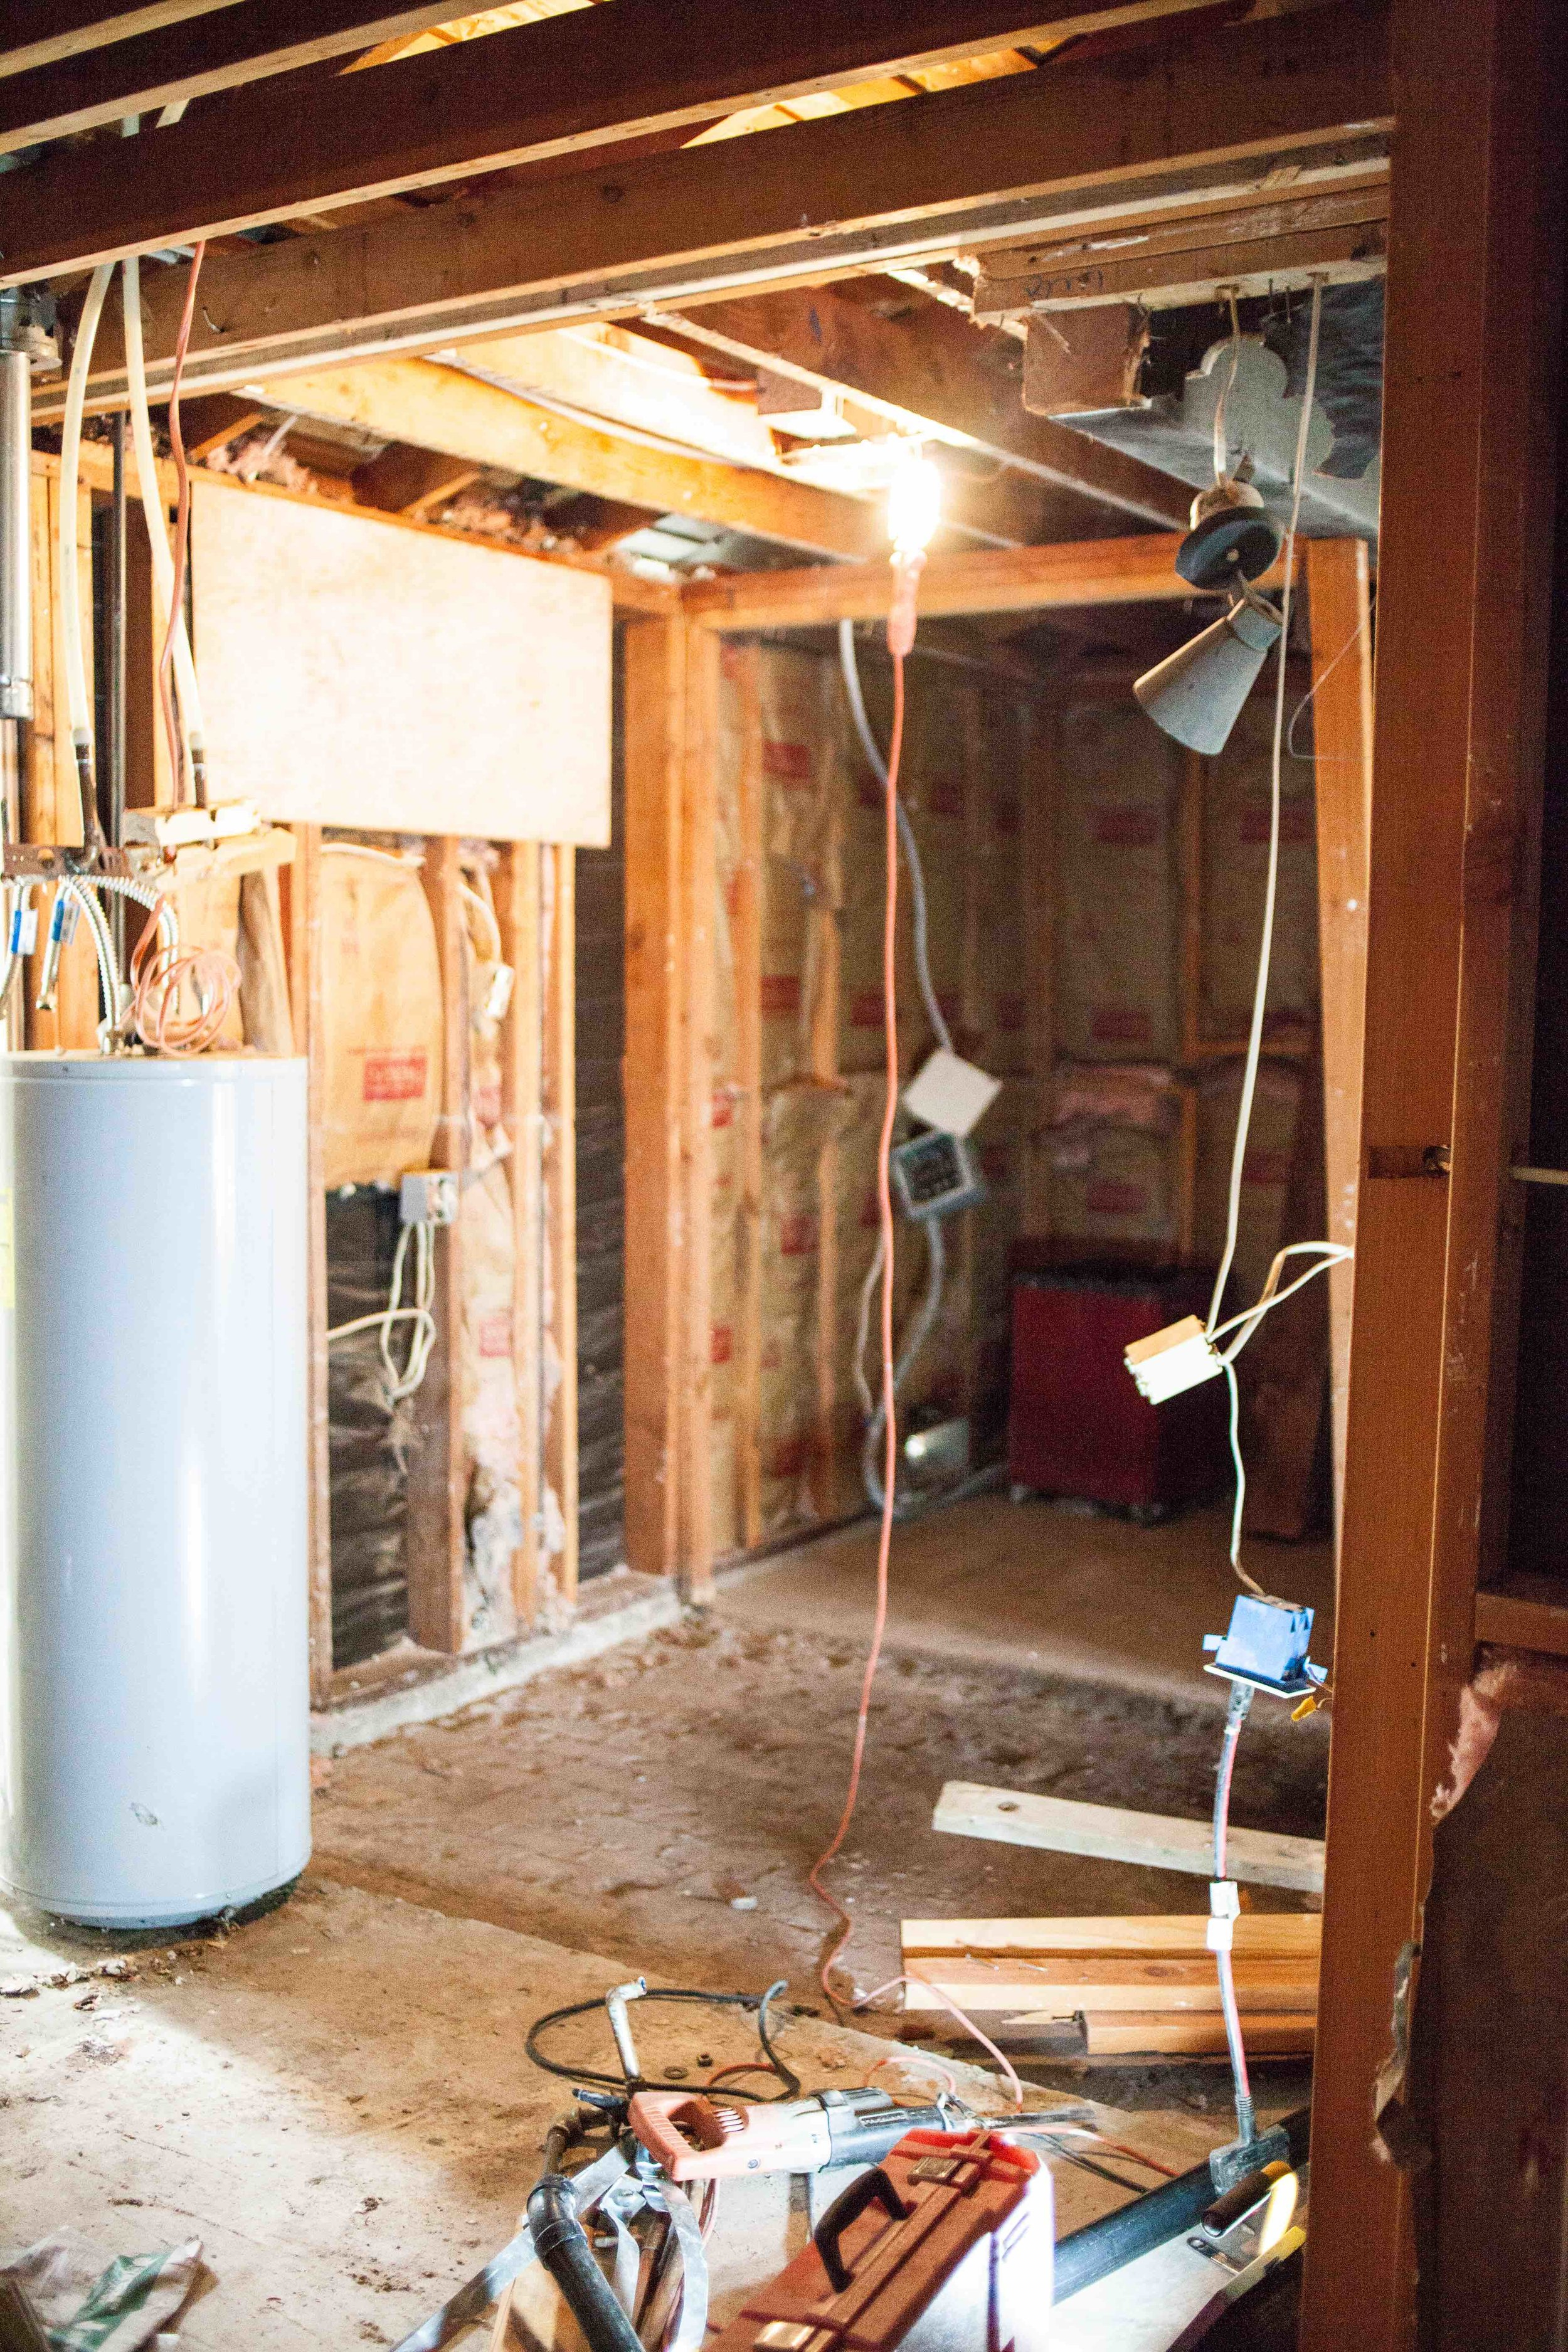 WHAT ARE YOU LOOKING AT?   1.  WATER HEATER : WILL BE REPLACED WITH A TANKLESS THAT WILL BE MOUNTED ON THE EXTERIOR OF THE HOUSE AND THE GAINED SQUARE FOOTAGE WILL BECOME PART OF THE BATHROOM  2.  BACKGROUND: NEW CLOSET SPACE THAT WAS ONCE PART OF THE SAUNA